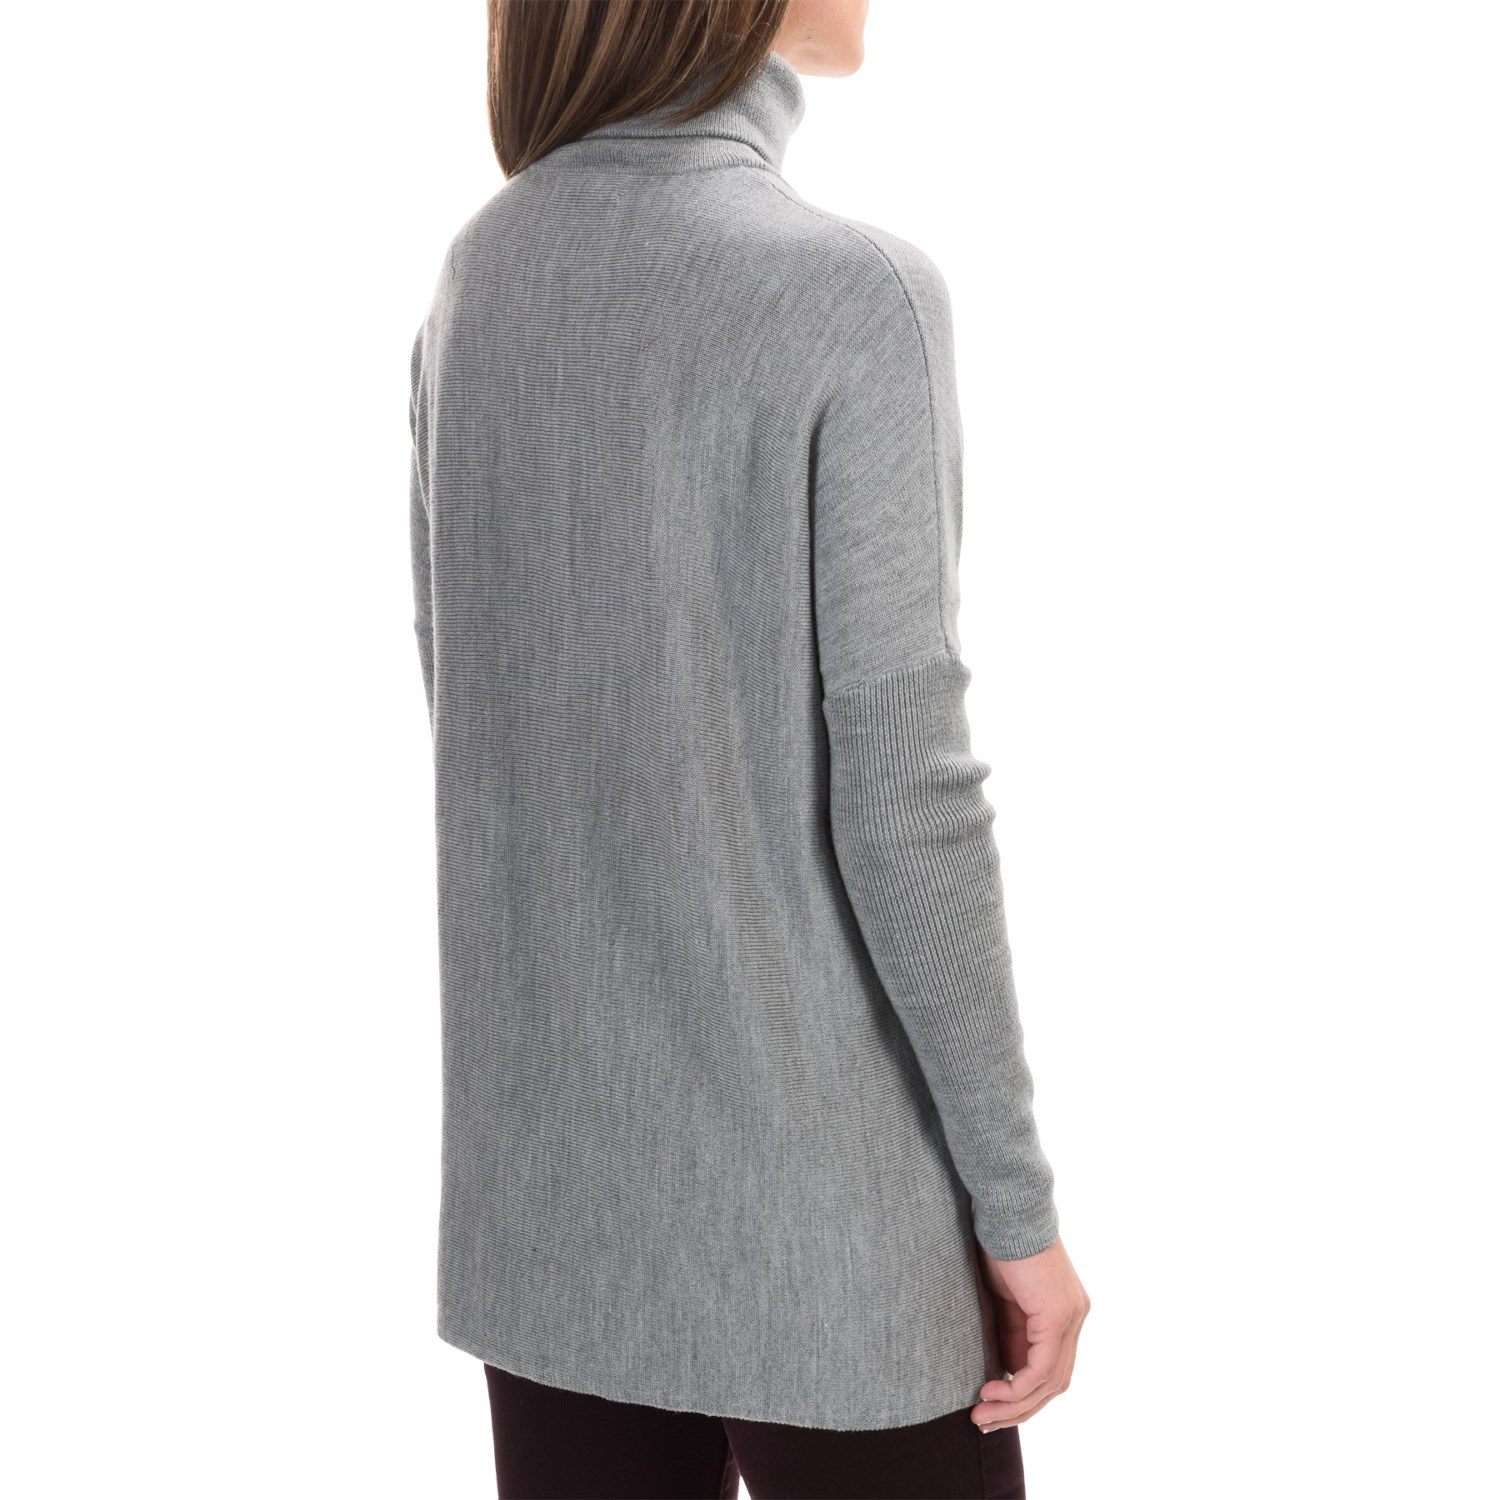 » Review Price Nordstrom Men's Shop Merino Wool Turtleneck Sweater by Mens Sweaters, Shop Soft Surroundings sale for great deals on women's clothing, beauty and home decor.